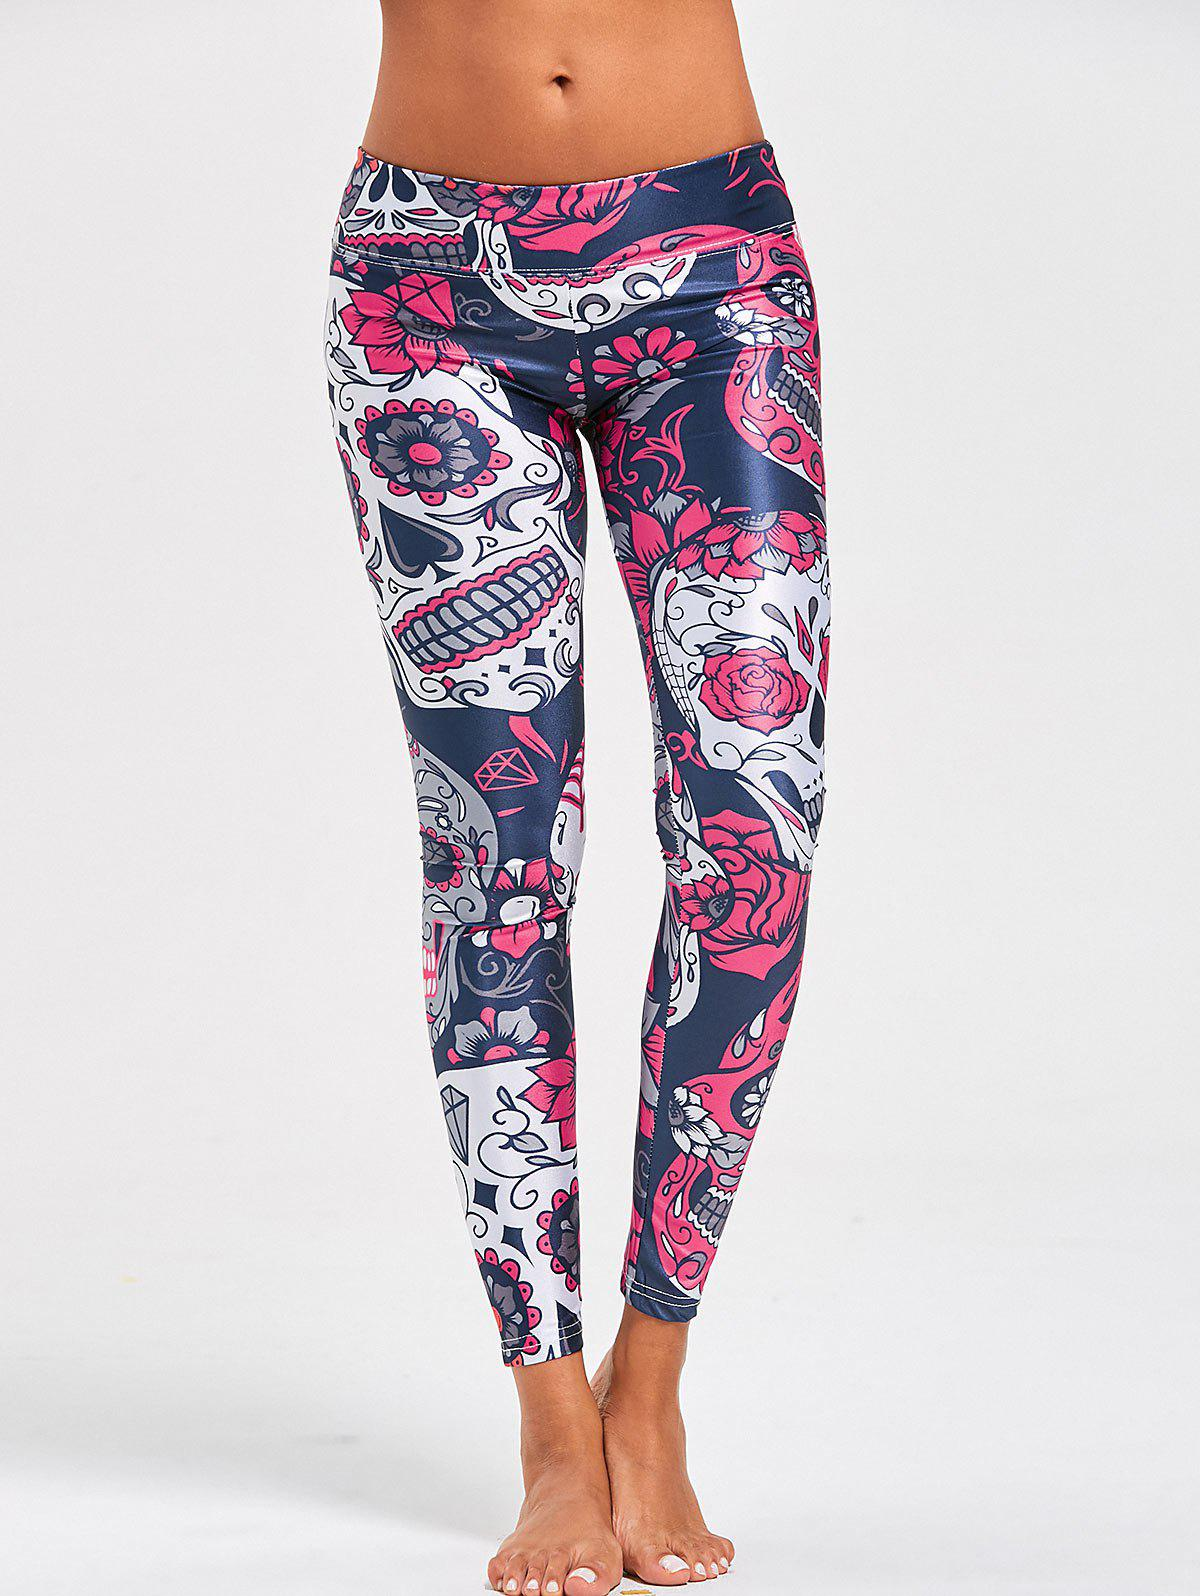 New High Waist Halloween Floral Skull Print Leggings